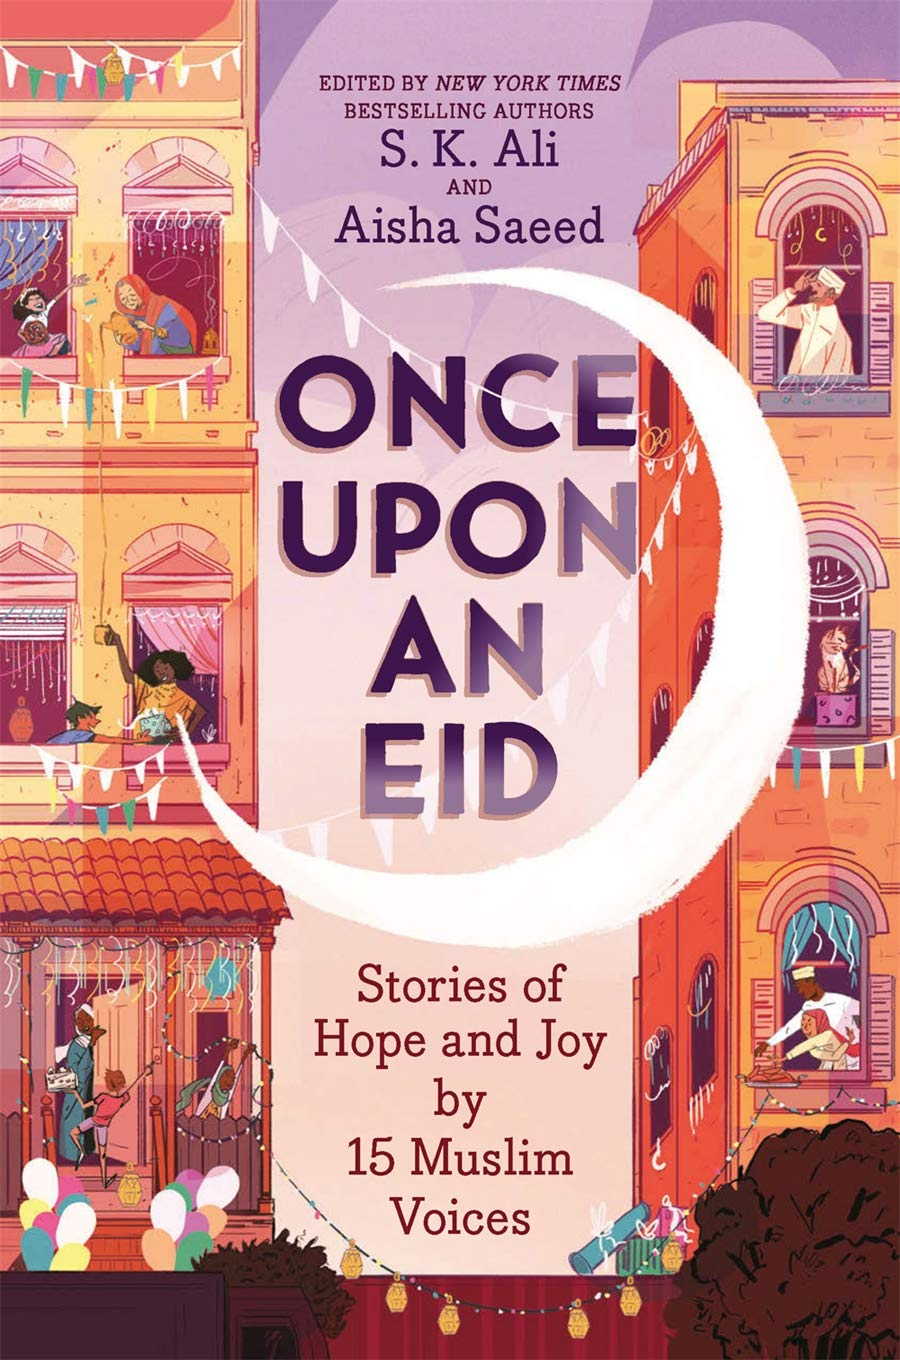 Once Upon an Eid: Stories of Hope and Joy by 15 Muslim Voices: Amazon.ca:  Ali, S. K., Saeed, Aisha, Alfageeh, Sara: Books